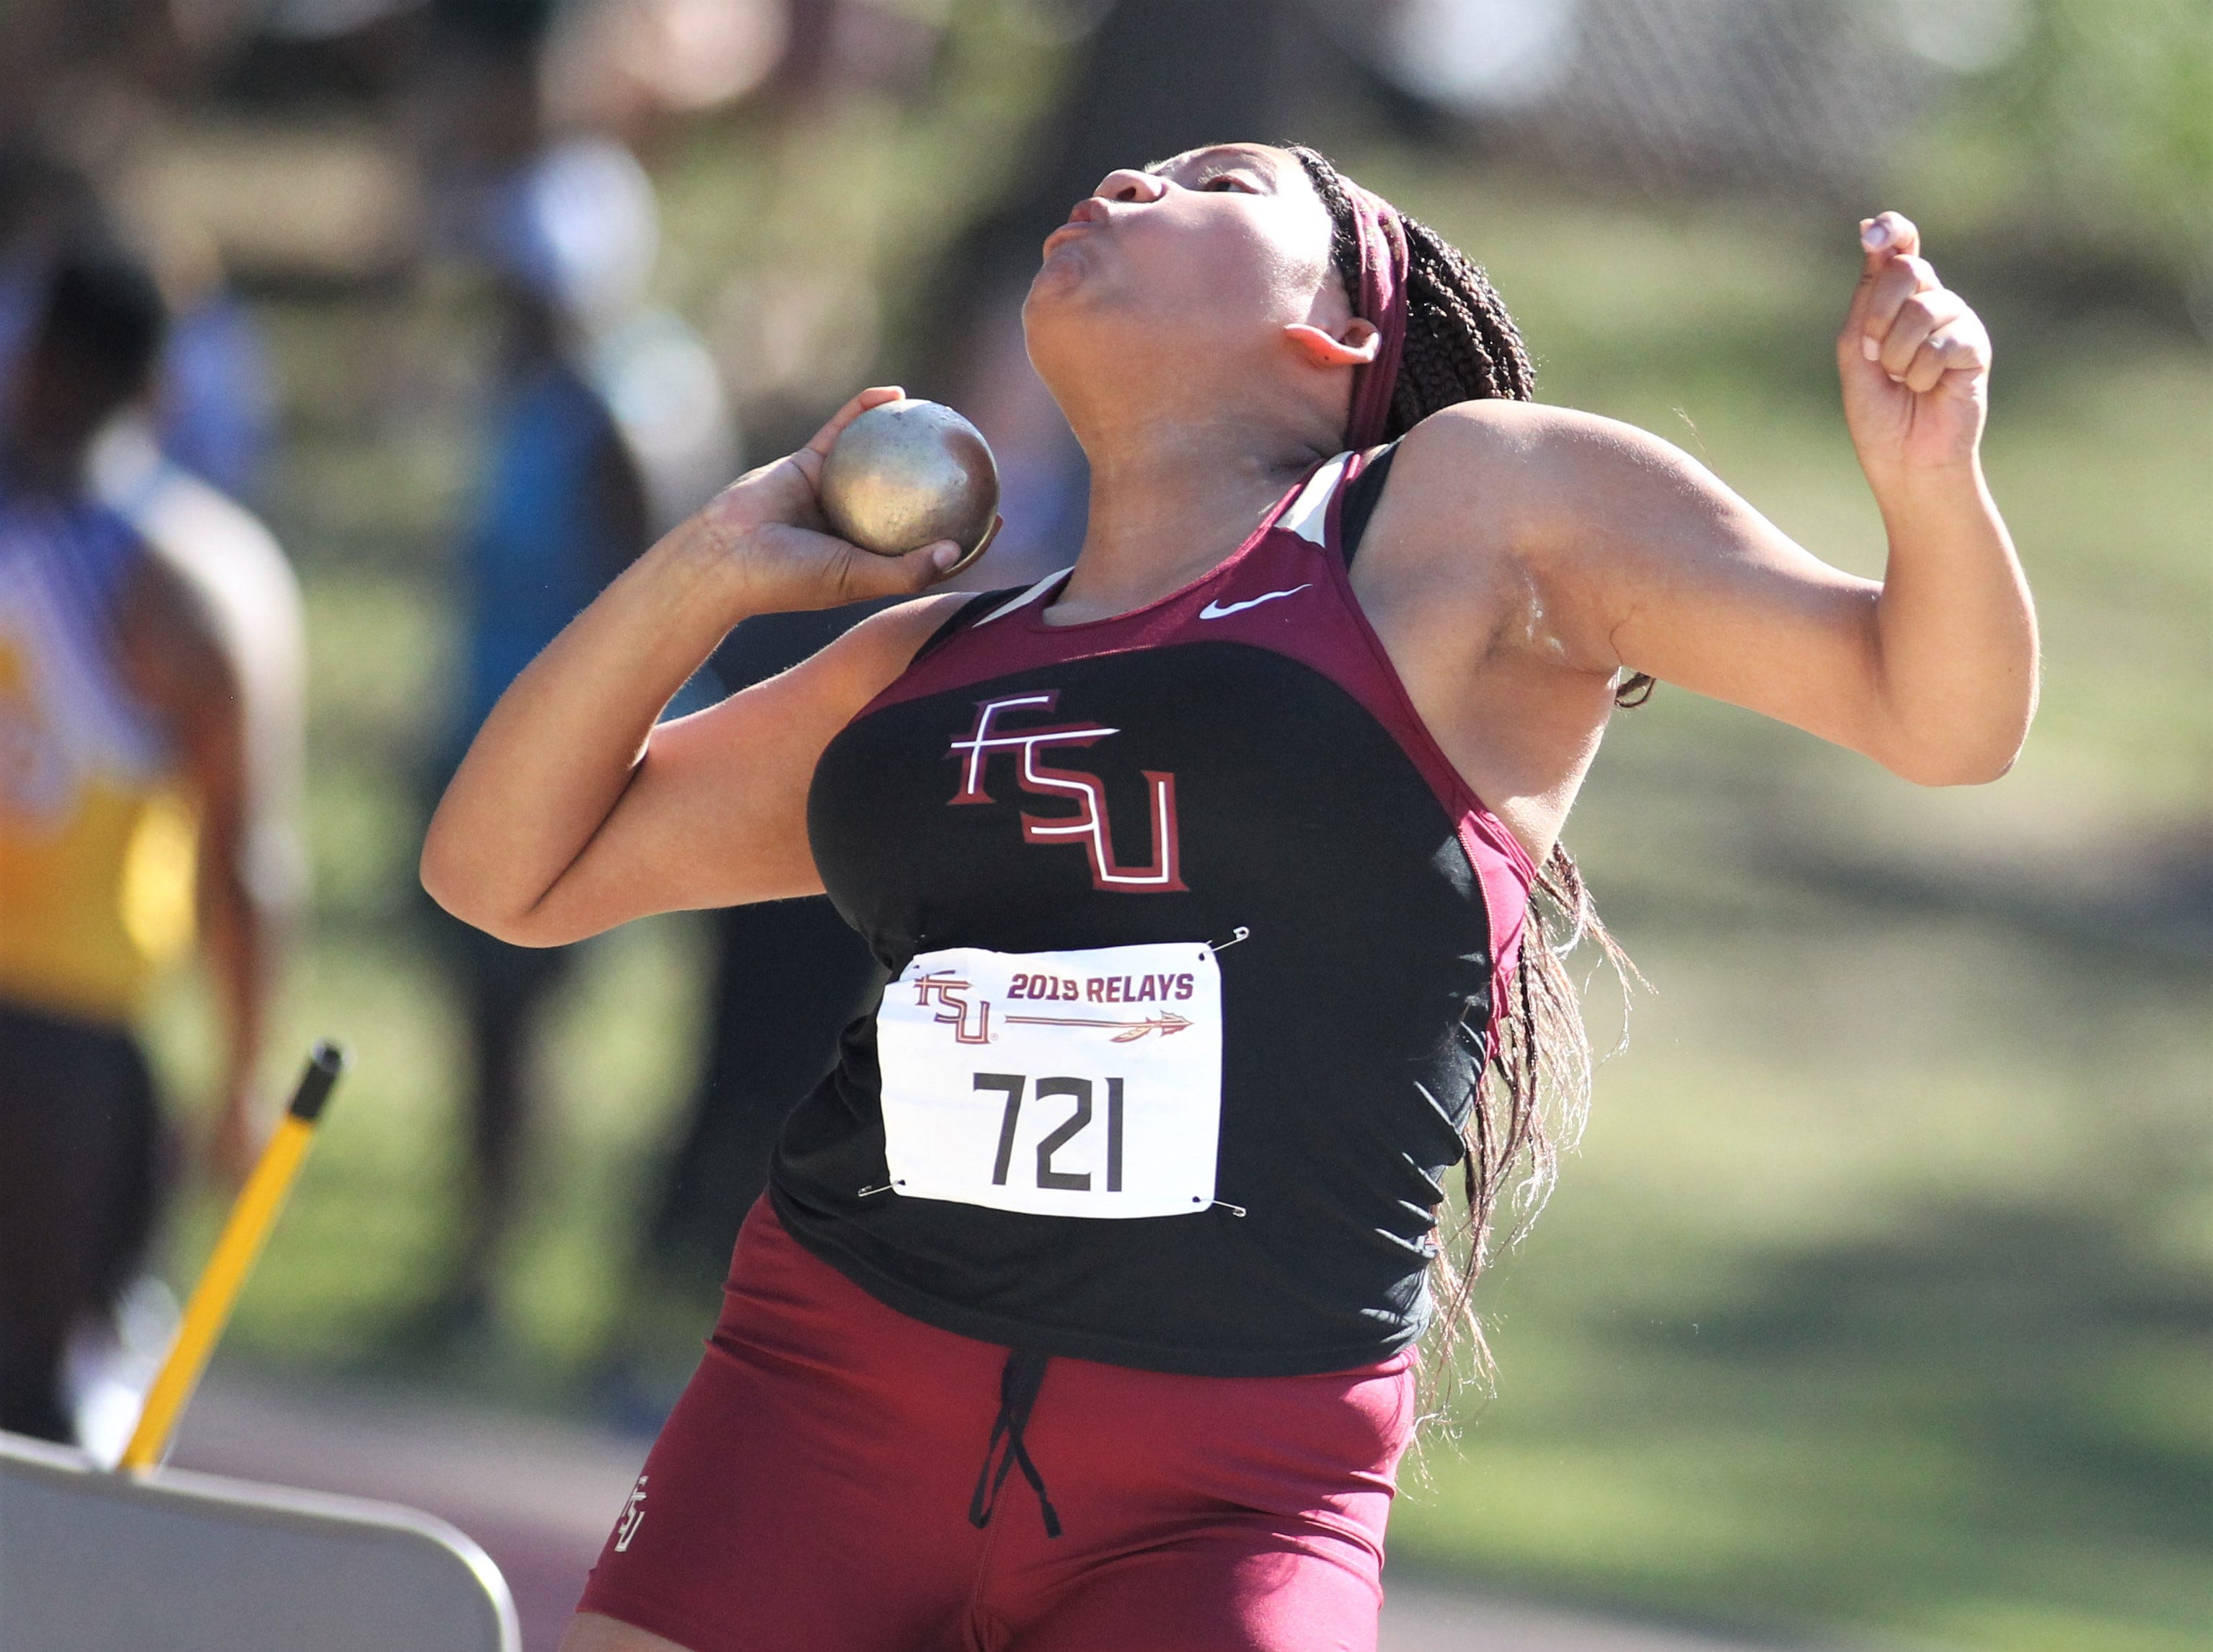 Florida High junior Jhordyn Stallworth throws shot put during the 40th annual FSU Relays at Mike Long Track on Saturday, March 23, 2019.